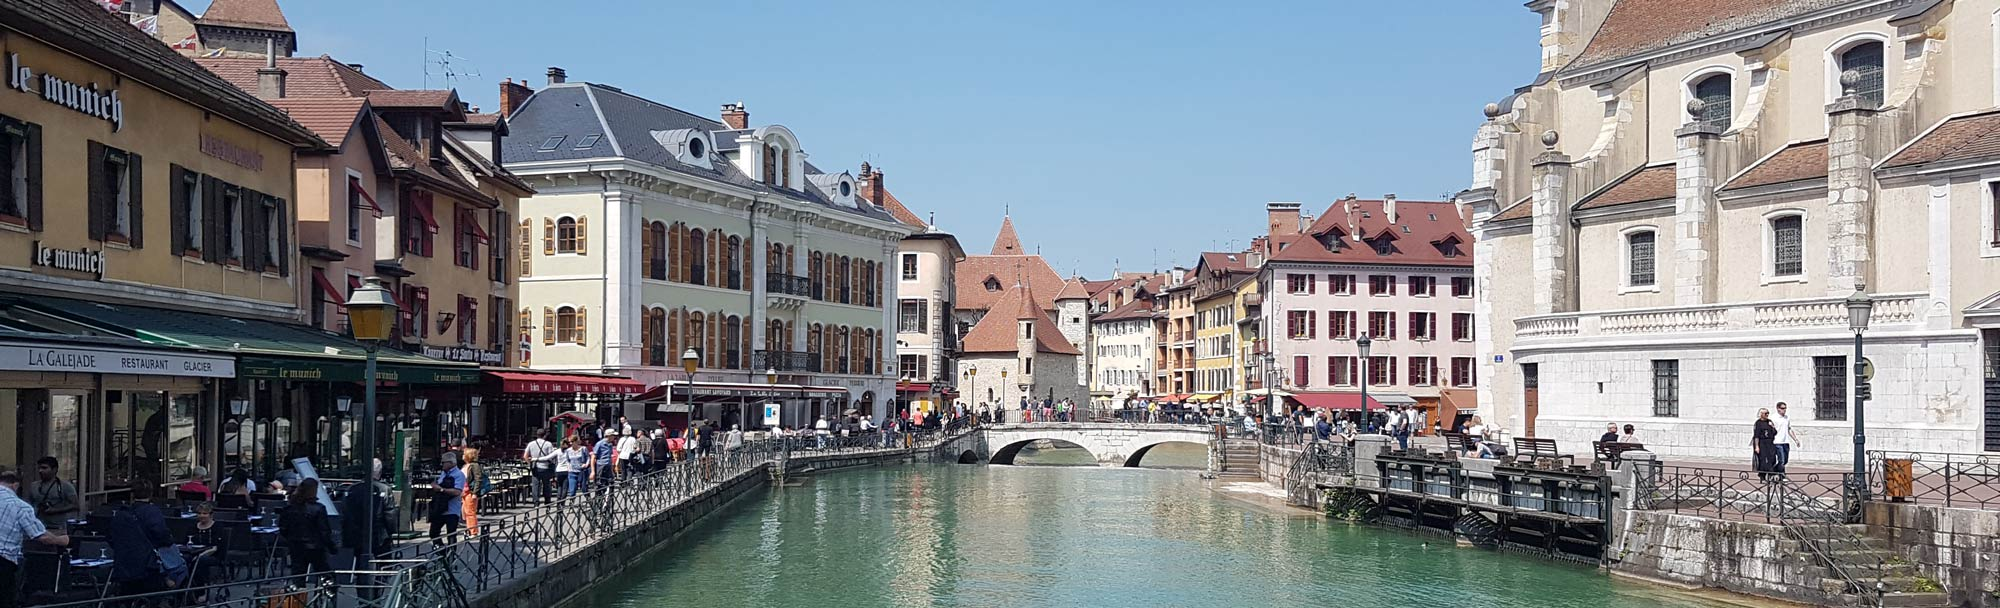 Foodie Things To Do In Annecy France Savored Journeys